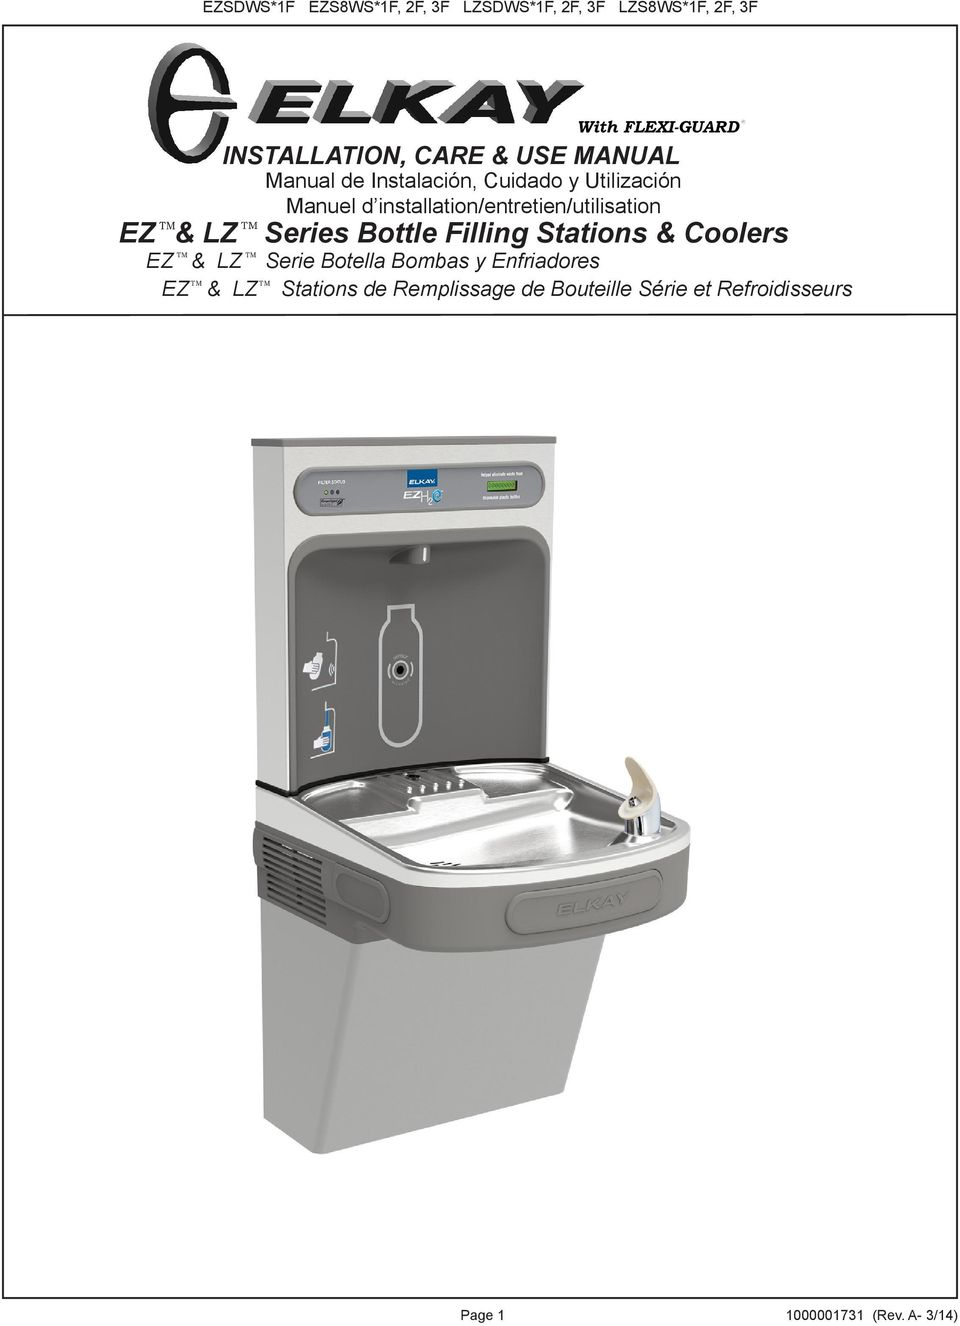 Series Bottle Filling Stations & Coolers TM TM EZ & LZ Serie Botella Bombas y Enfriadores TM